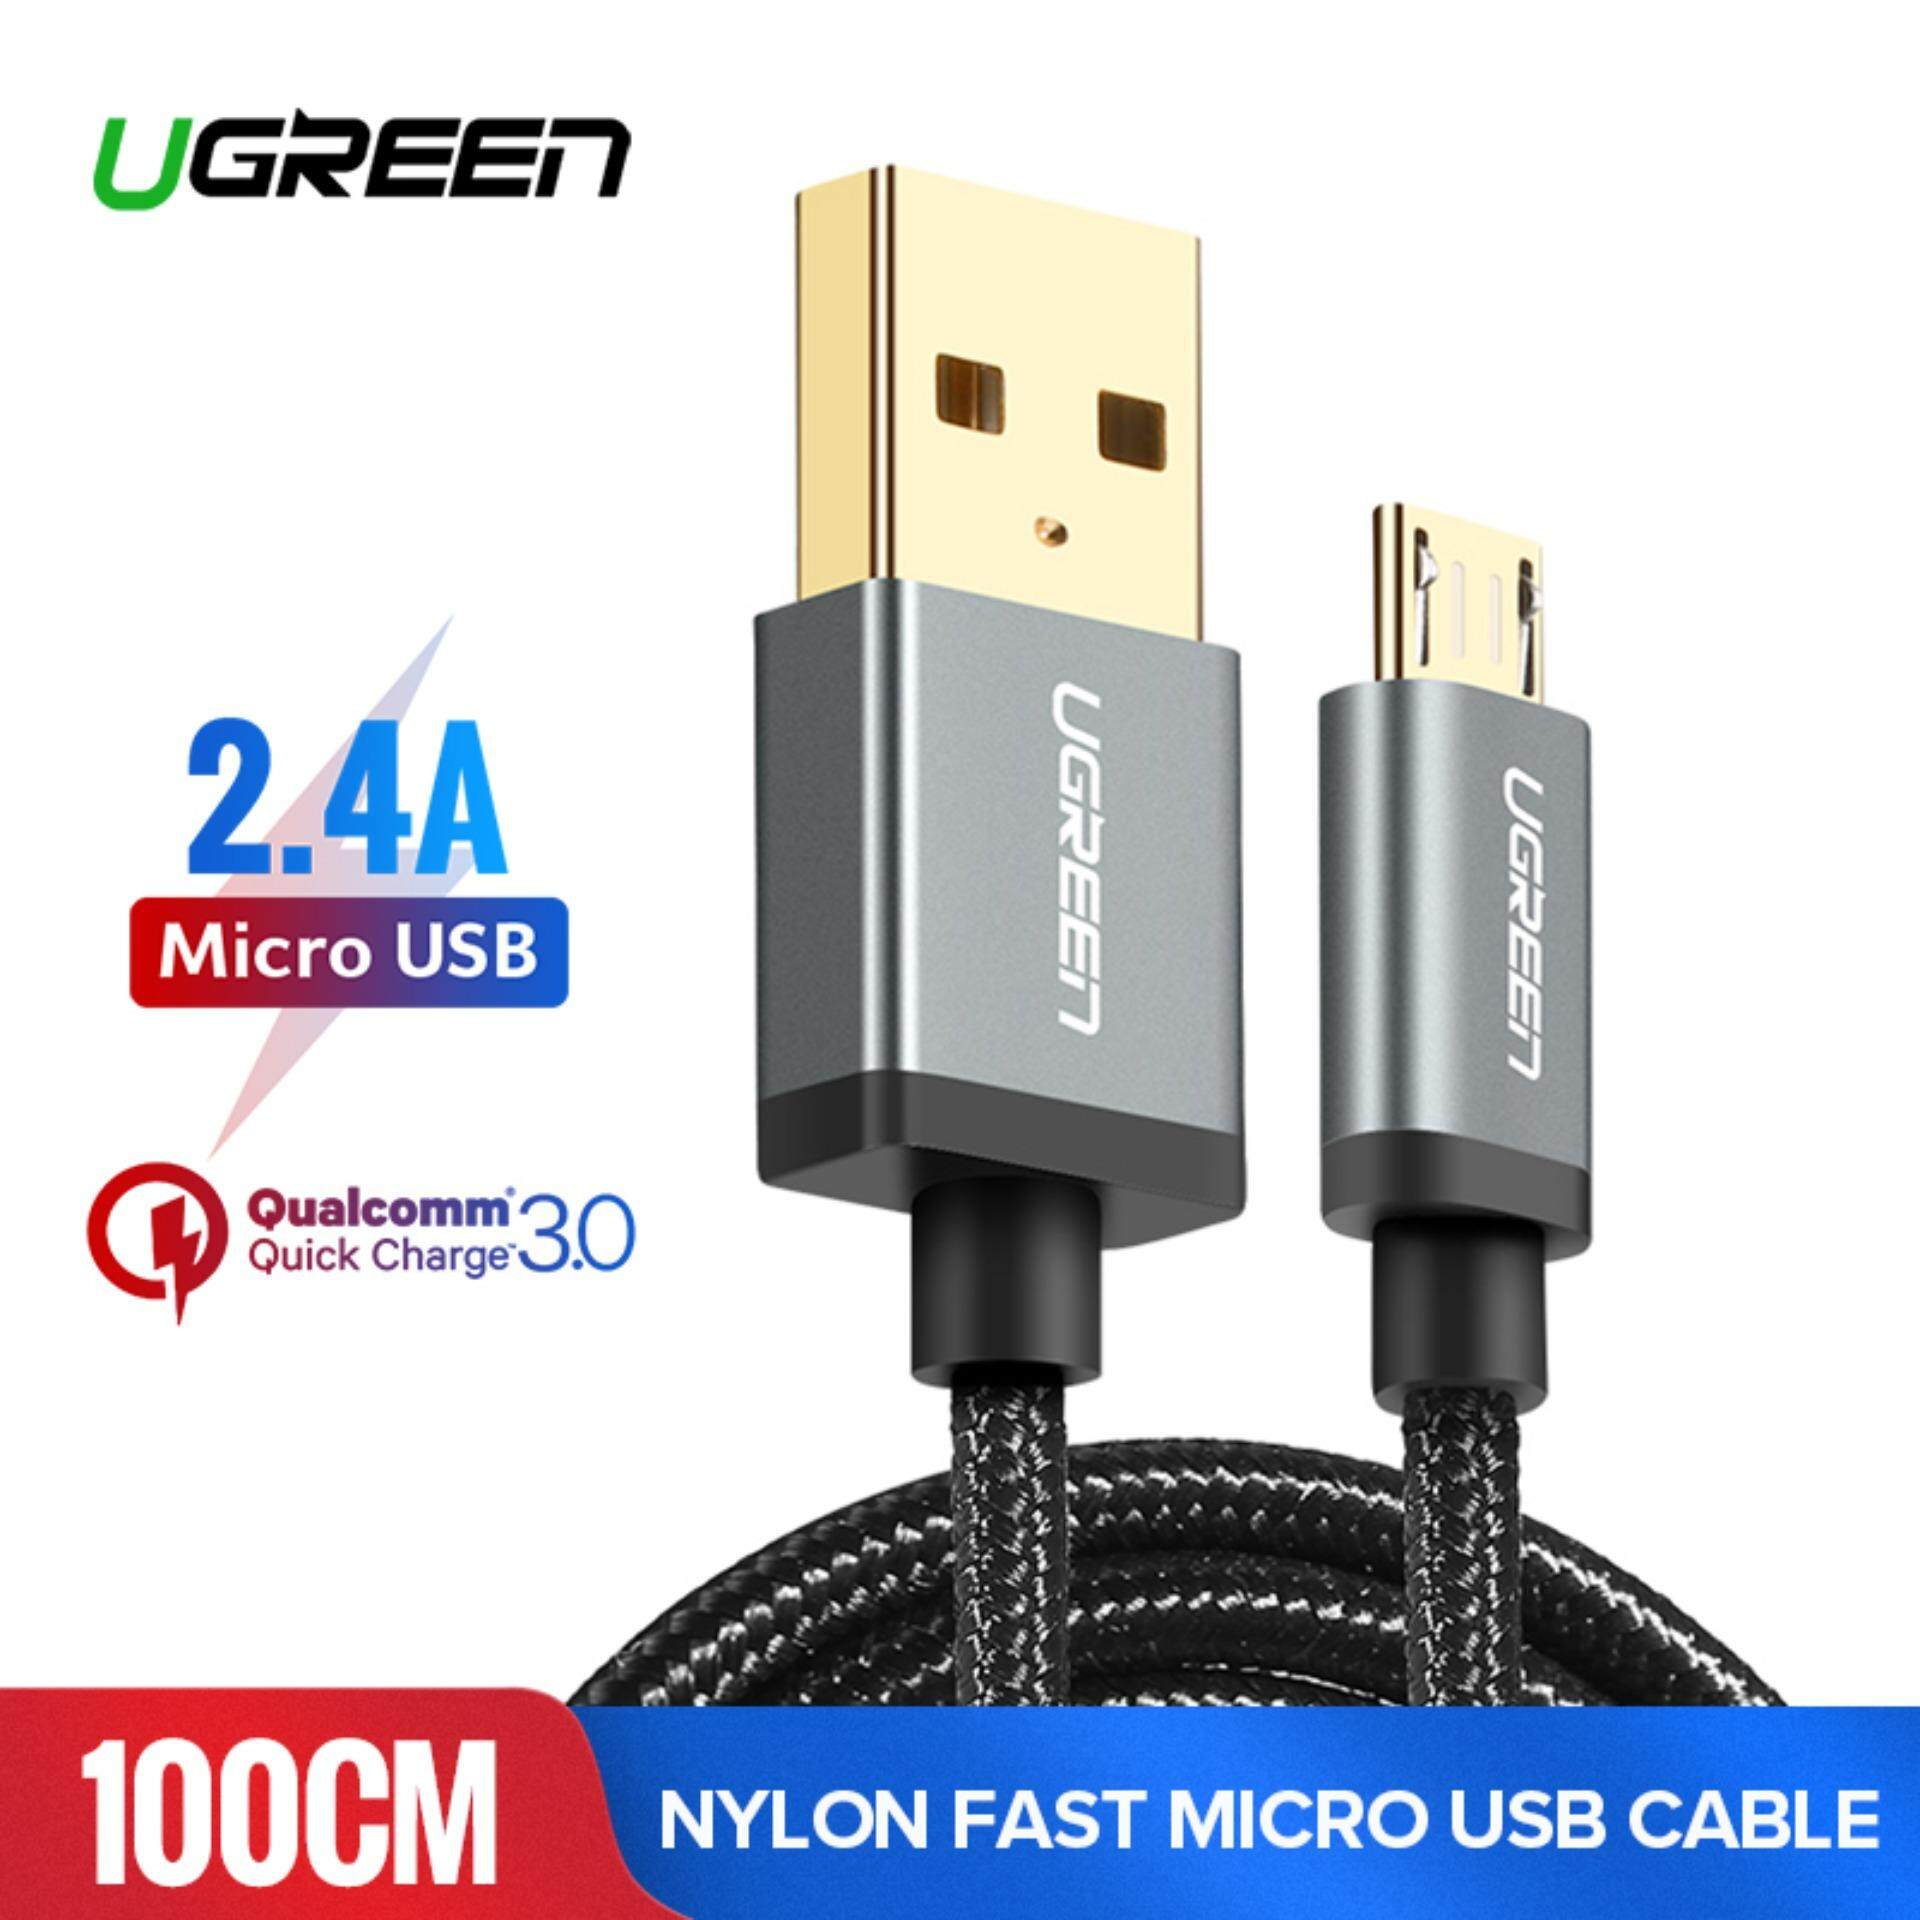 UGREEN 1Meter Micro USB Cable Nylon Braided Fast Quick Charger Cable USB 2.0 fast charging Cord